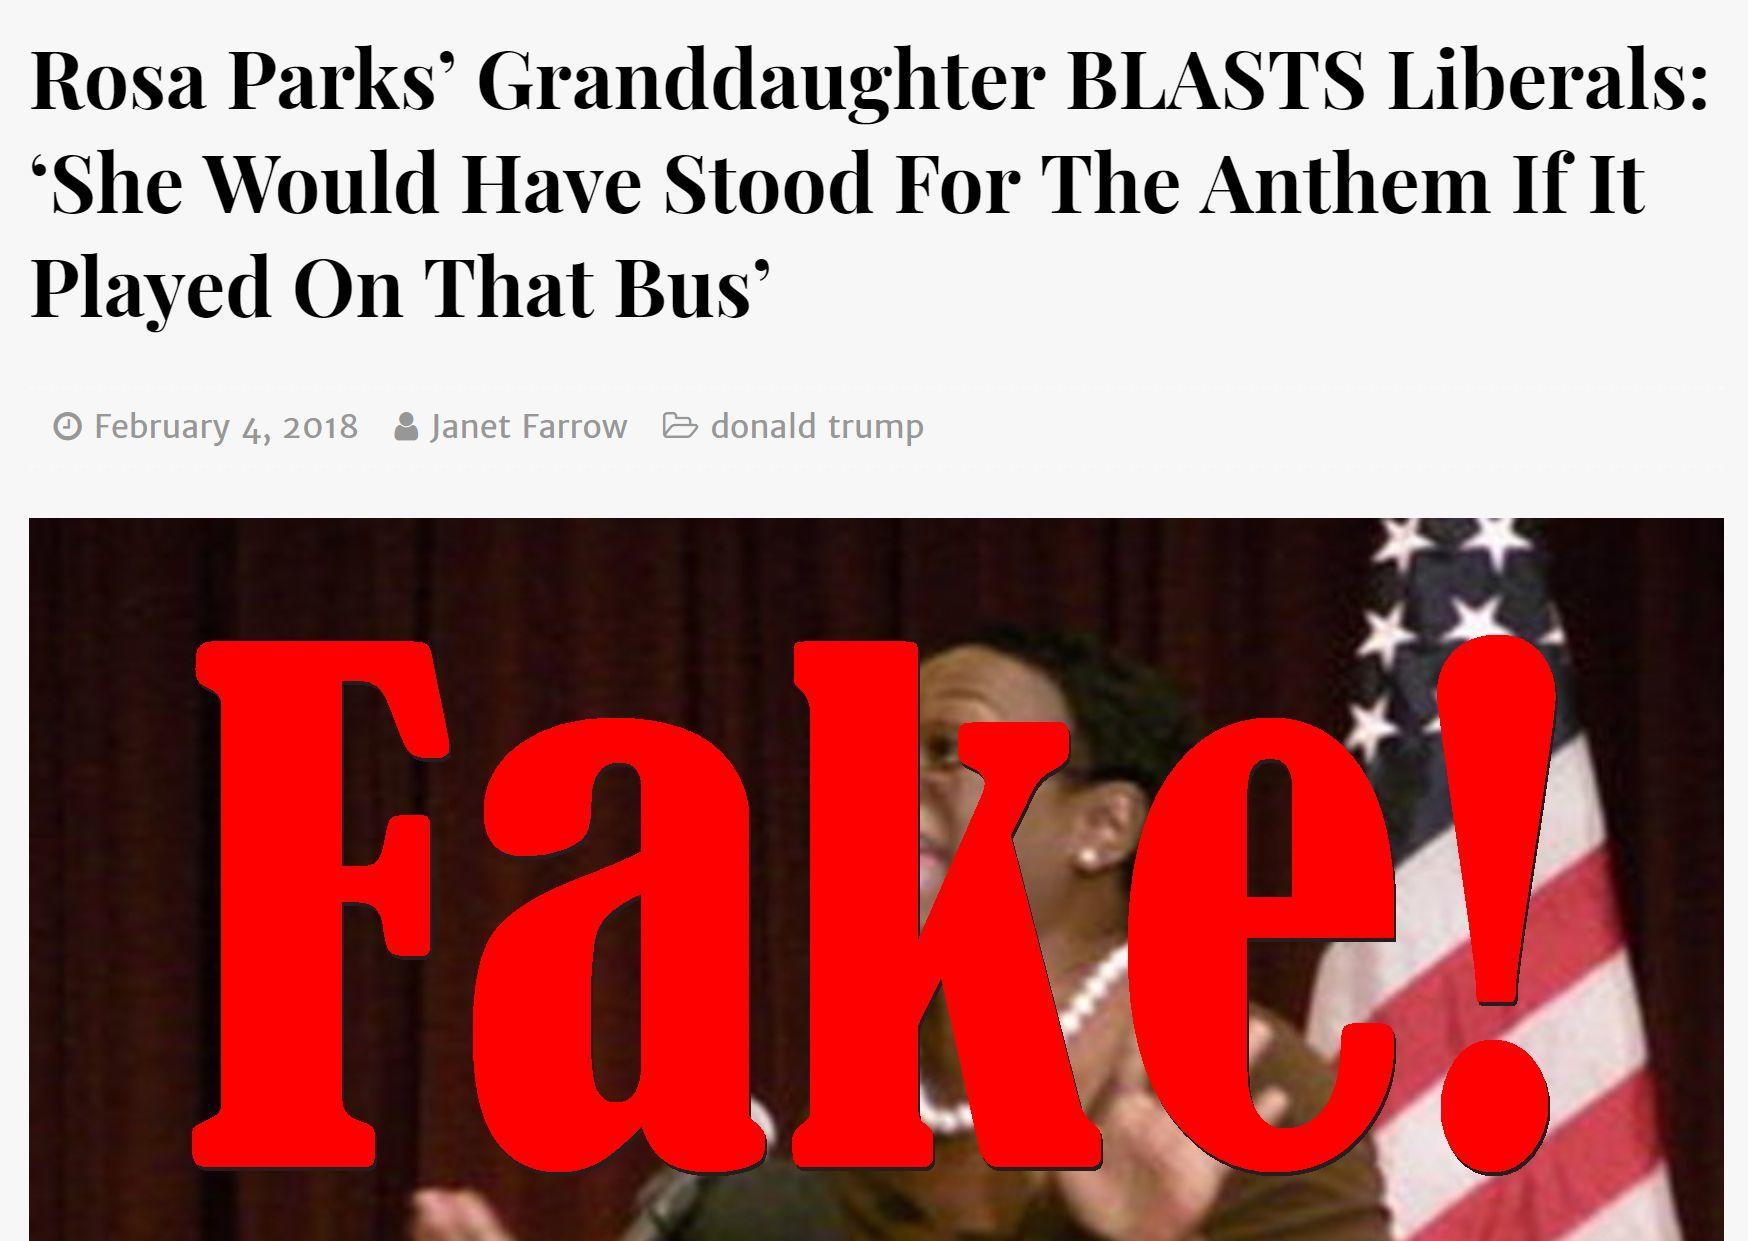 Fake News: Rosa Parks' Granddaughter Did NOT Blast Liberals, NEVER Said: 'She Would Have Stood For The Anthem If It Played On That Bus'